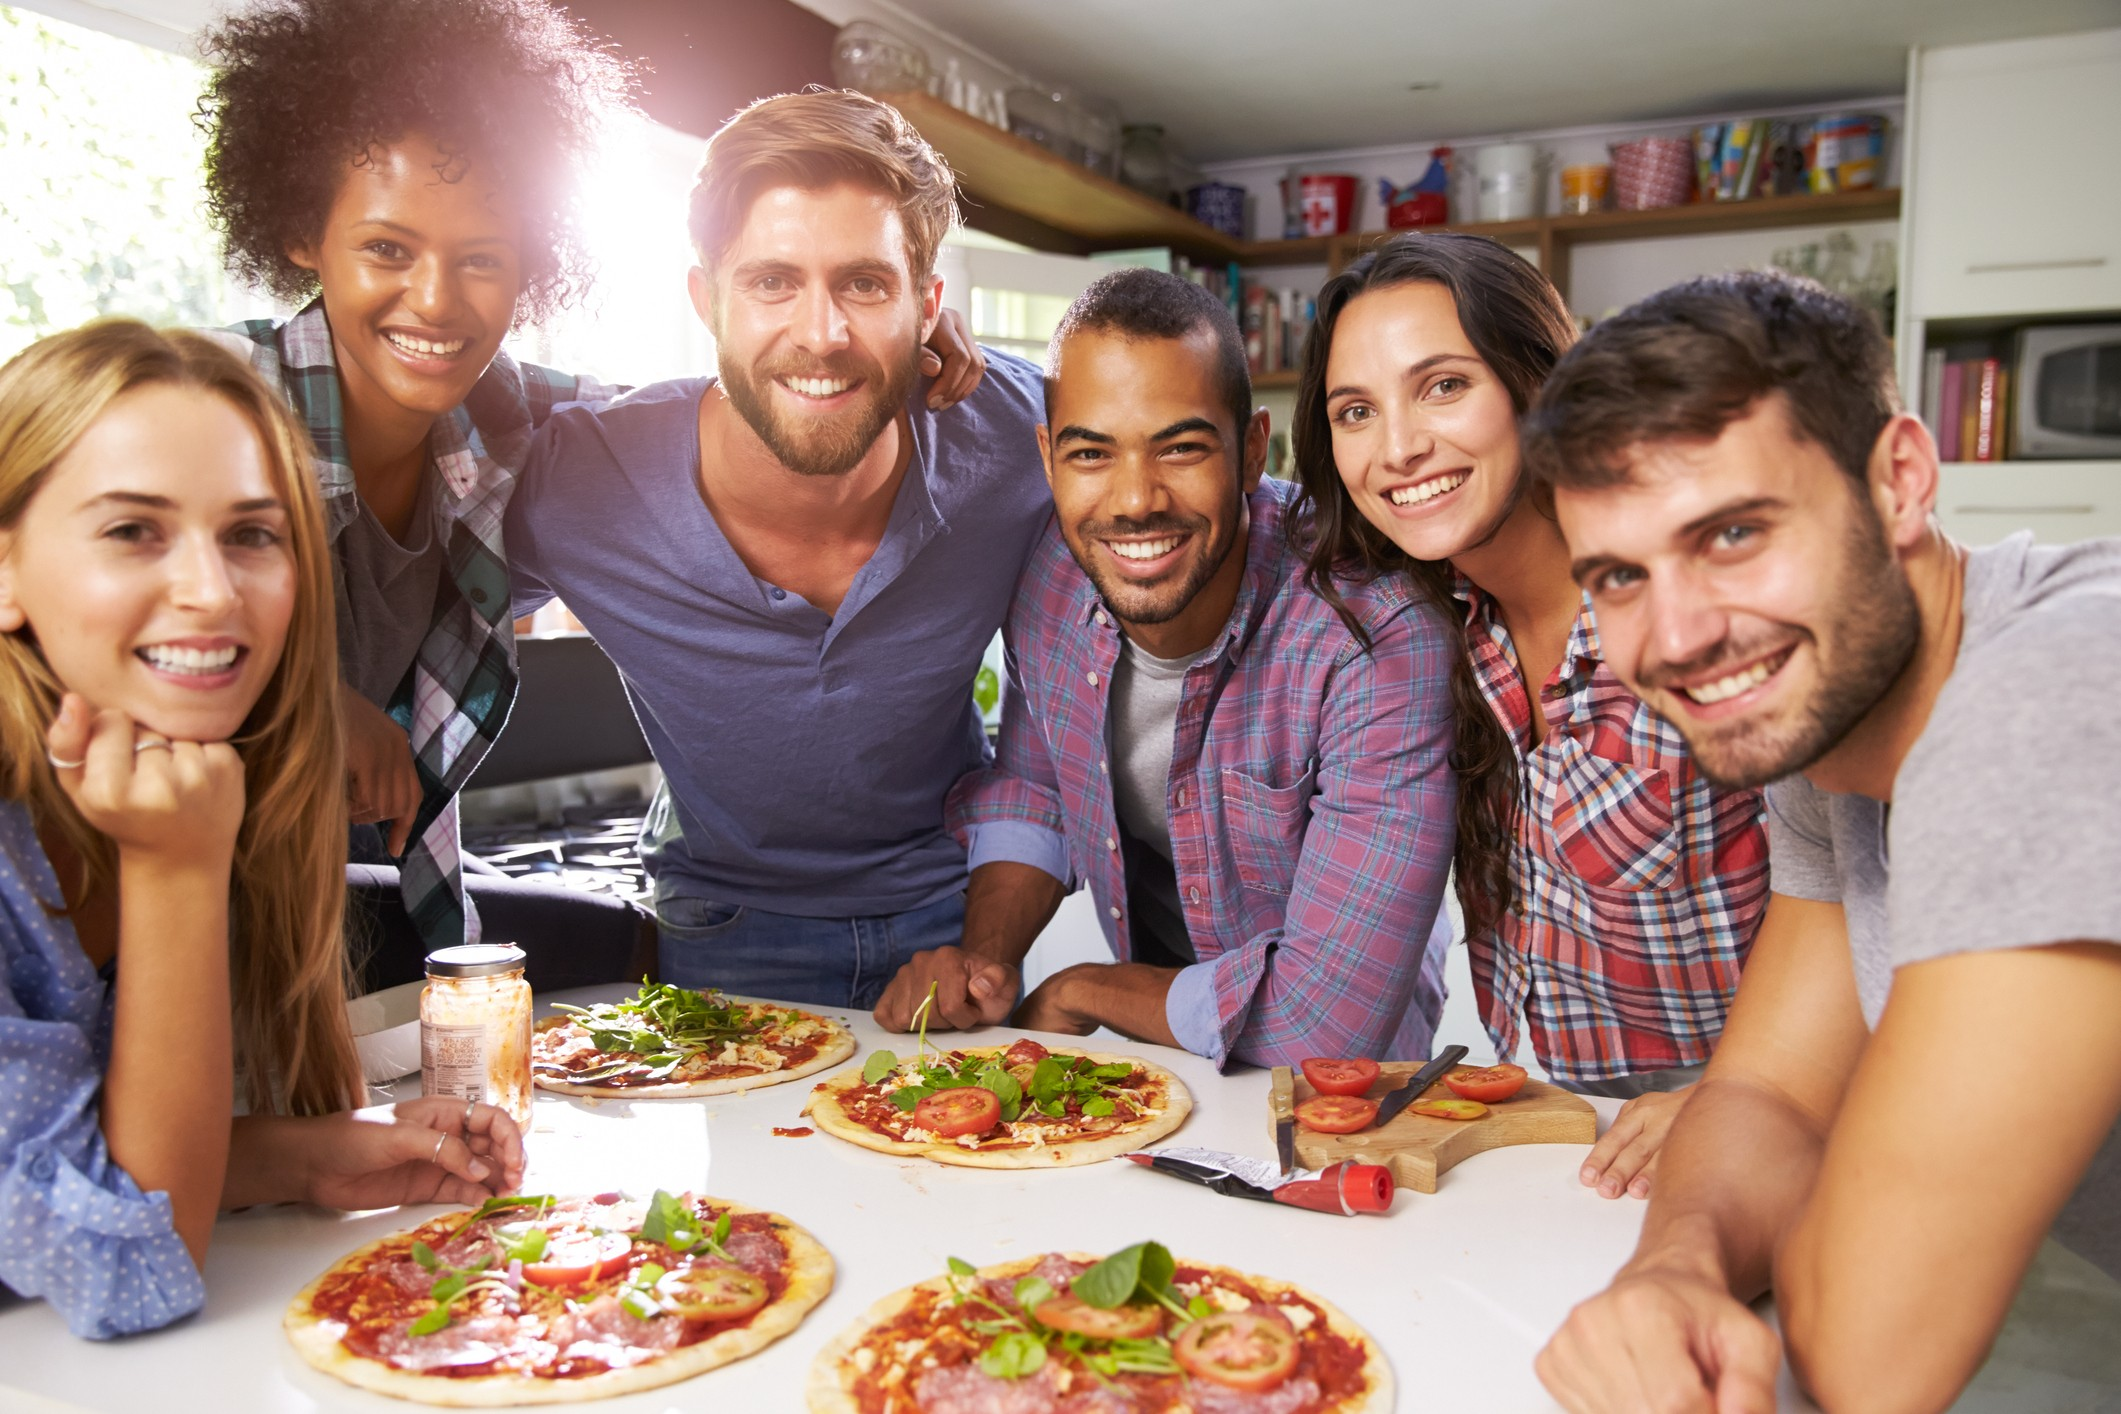 group of roommates making pizza